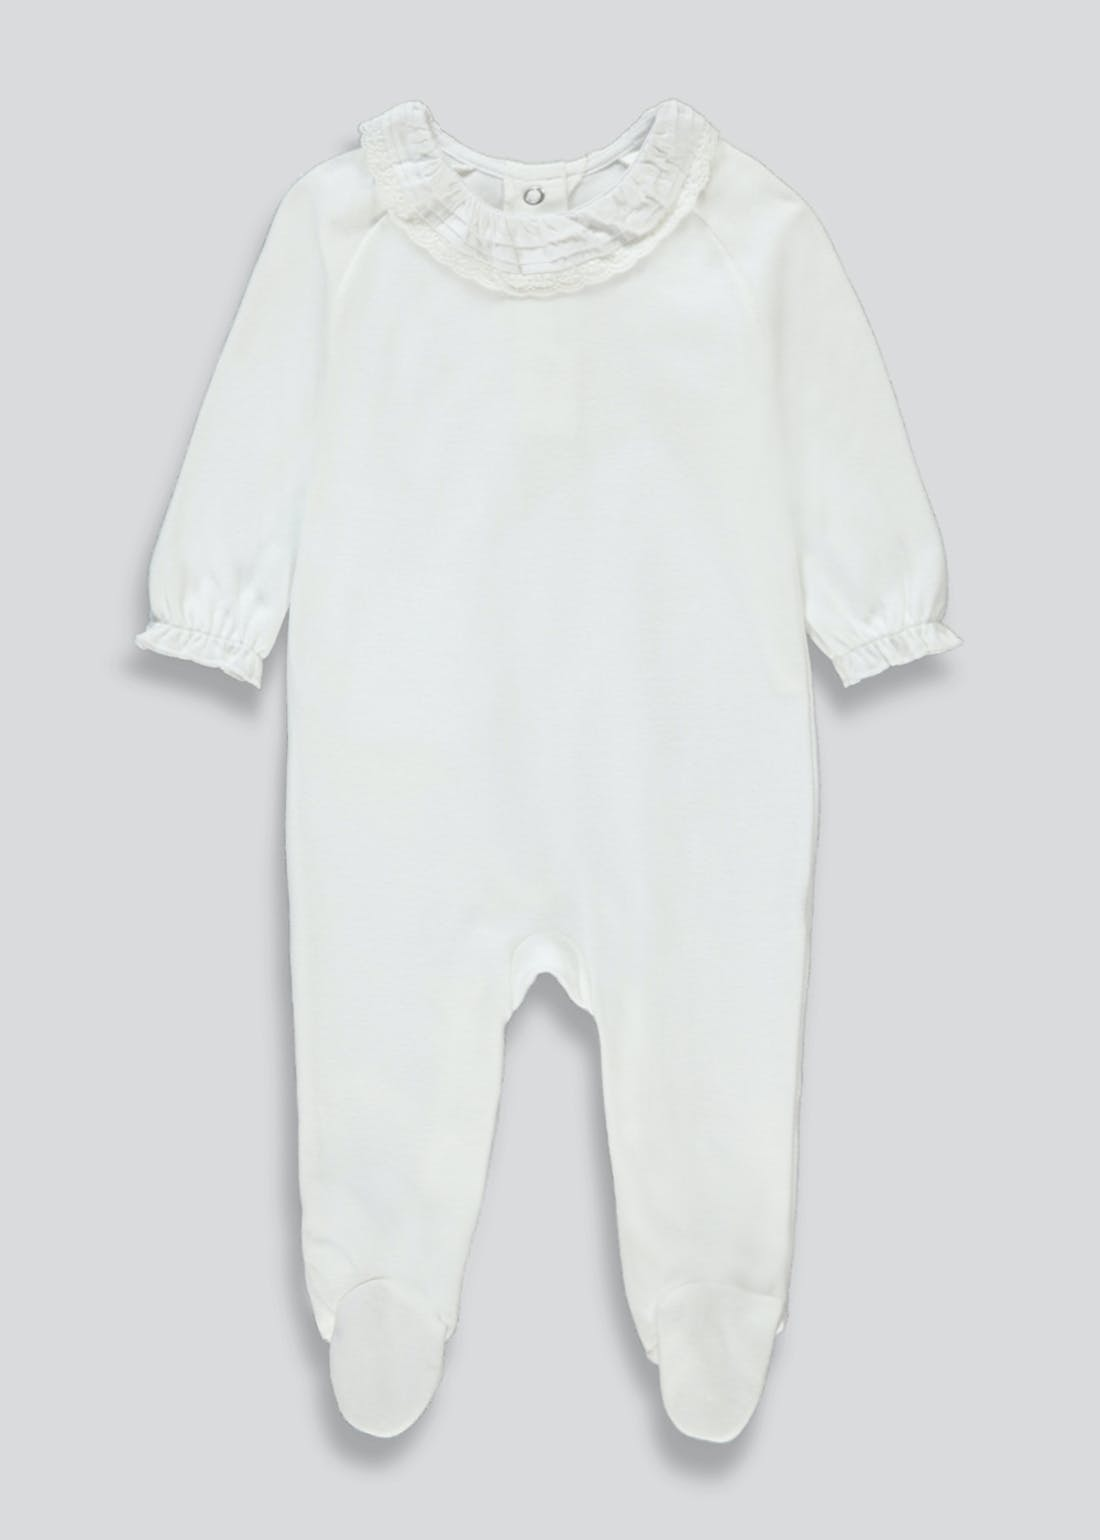 Unisex Frill Detail Baby Grow (Tiny Baby-9mths)